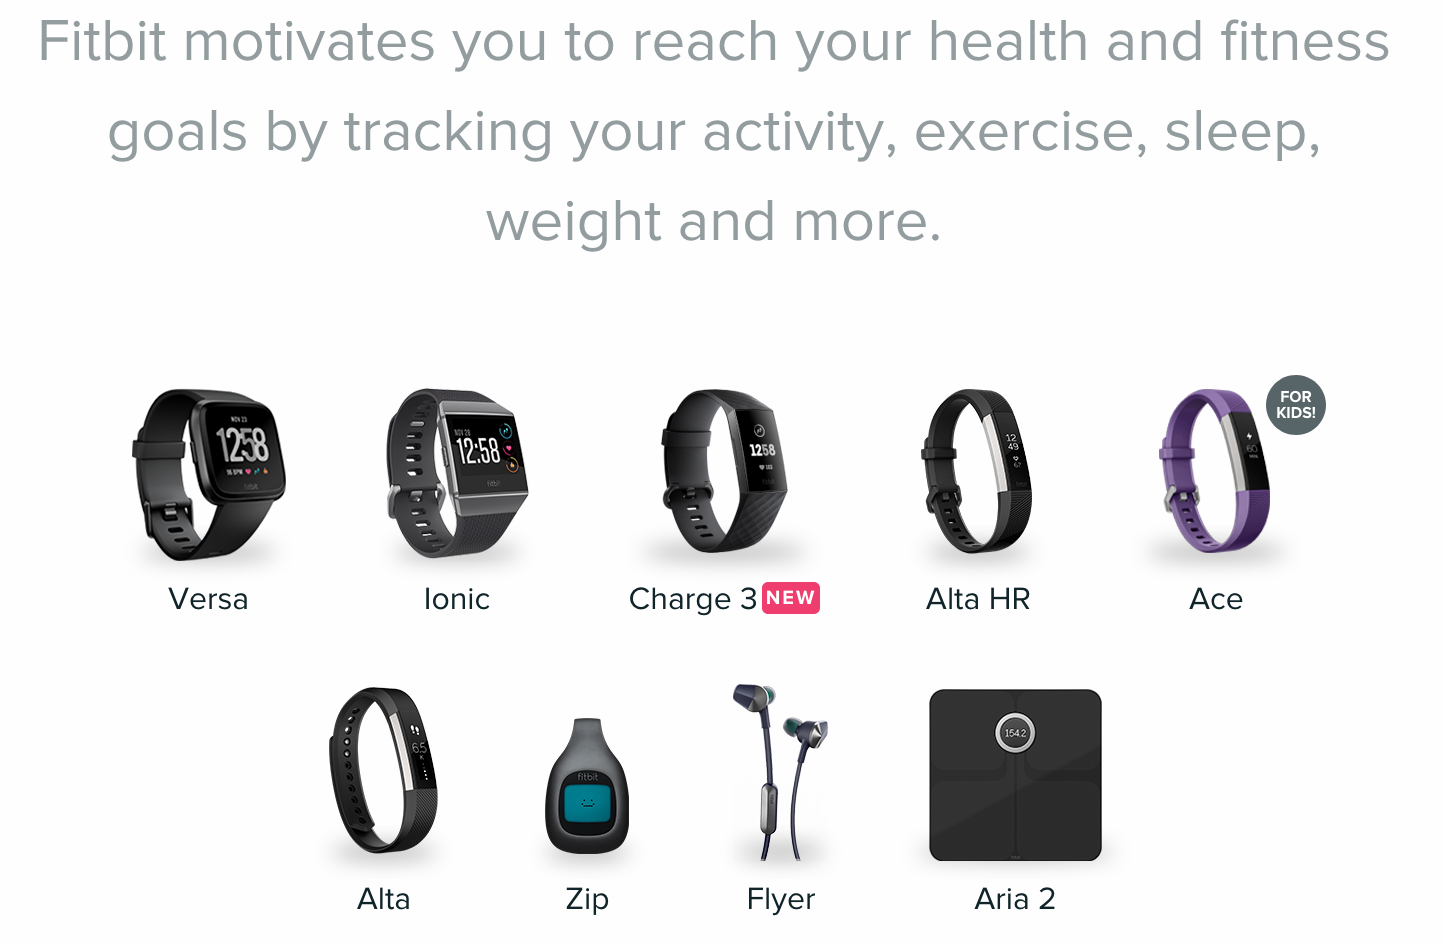 Fitbit: Taking The Leap Of Faith - Fitbit, Inc  (NYSE:FIT